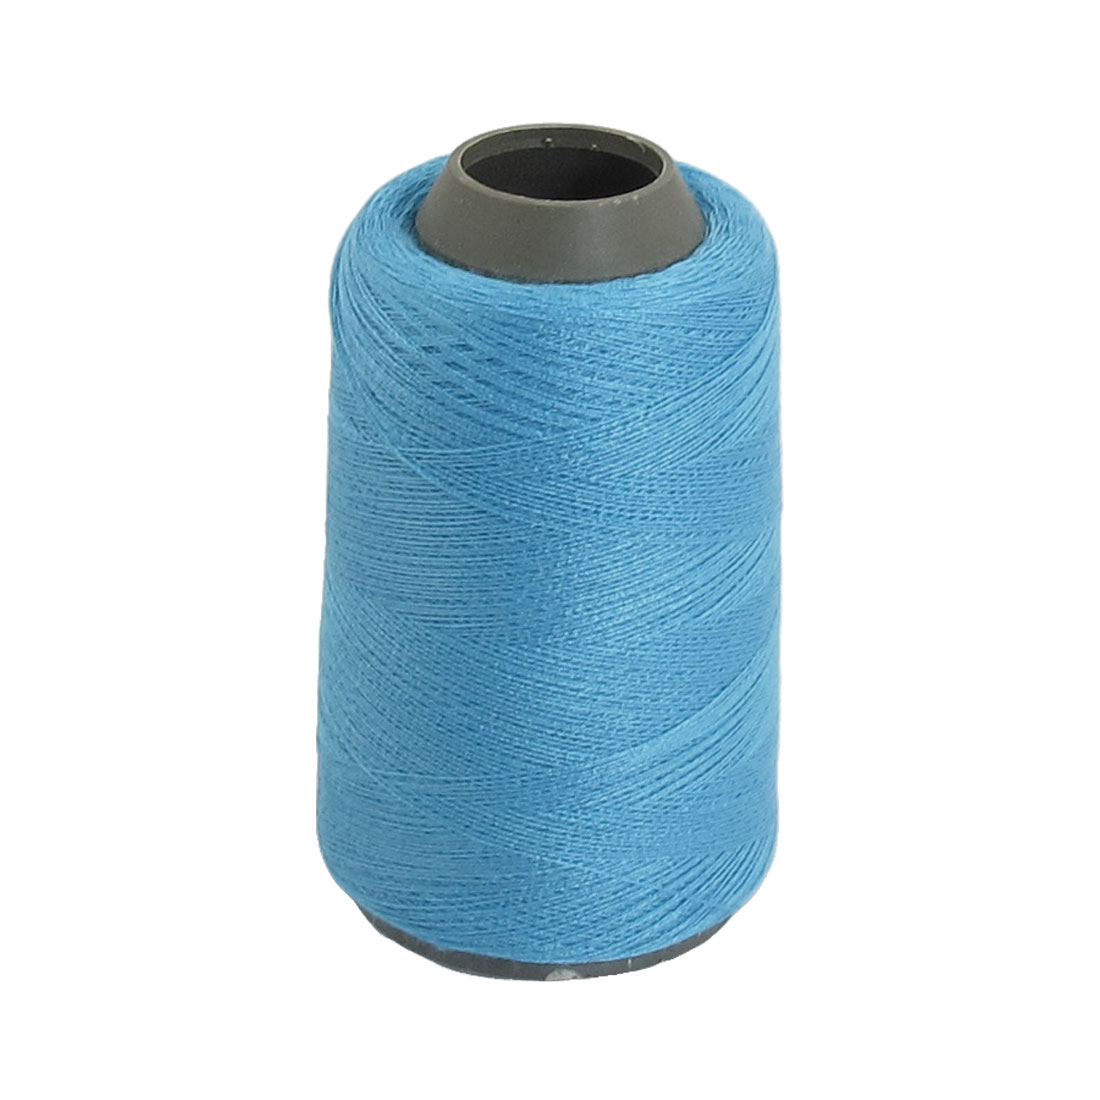 Tailoring Cotton Line Sewing Thread Reel Spool Baby Blue